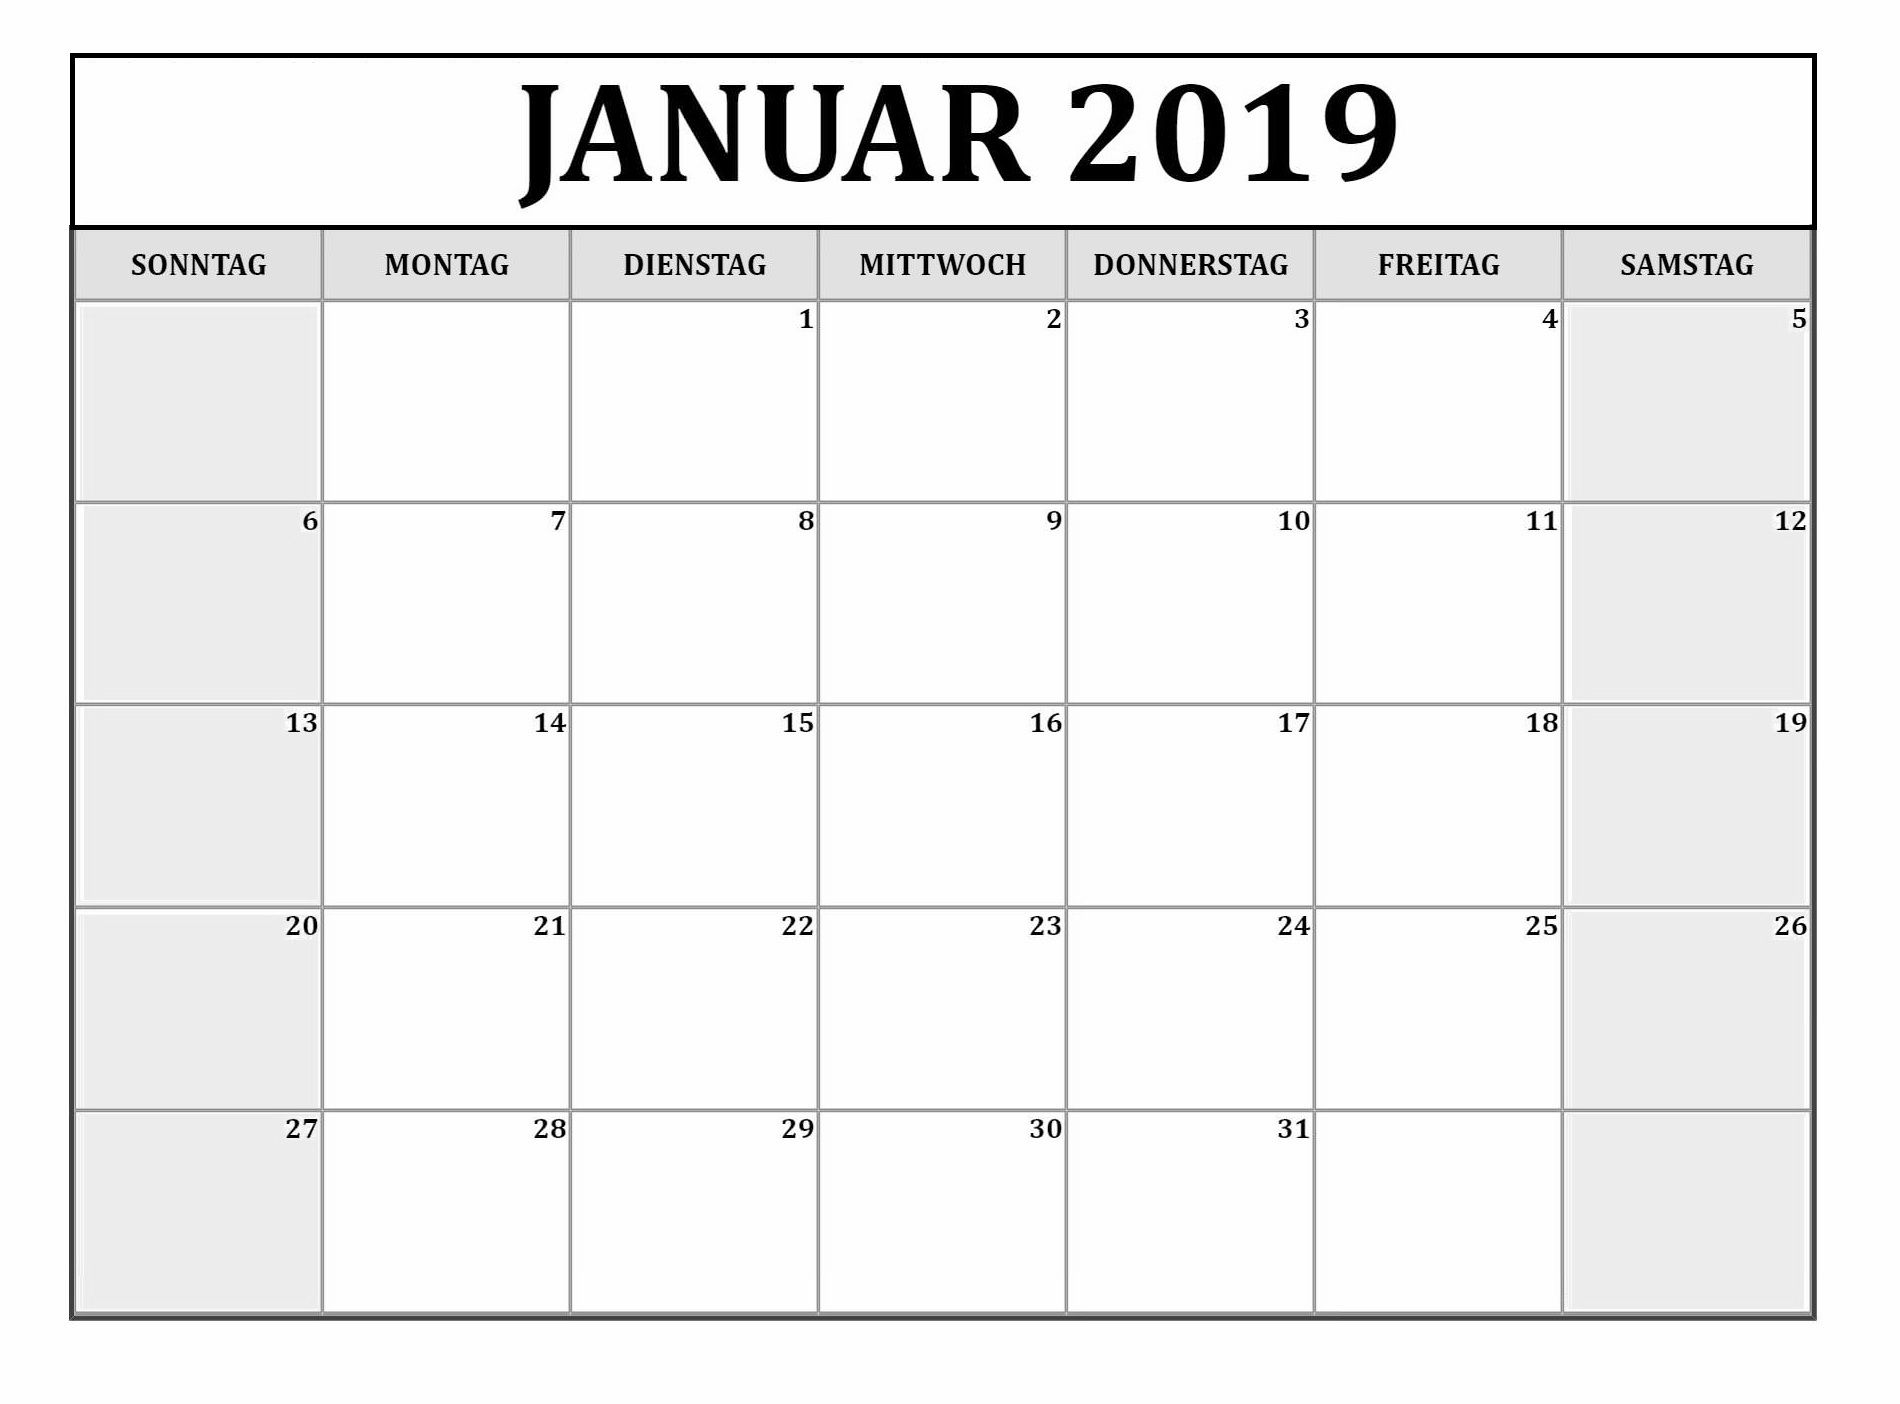 kalender 2019 januar kalender 2019 januar word search. Black Bedroom Furniture Sets. Home Design Ideas